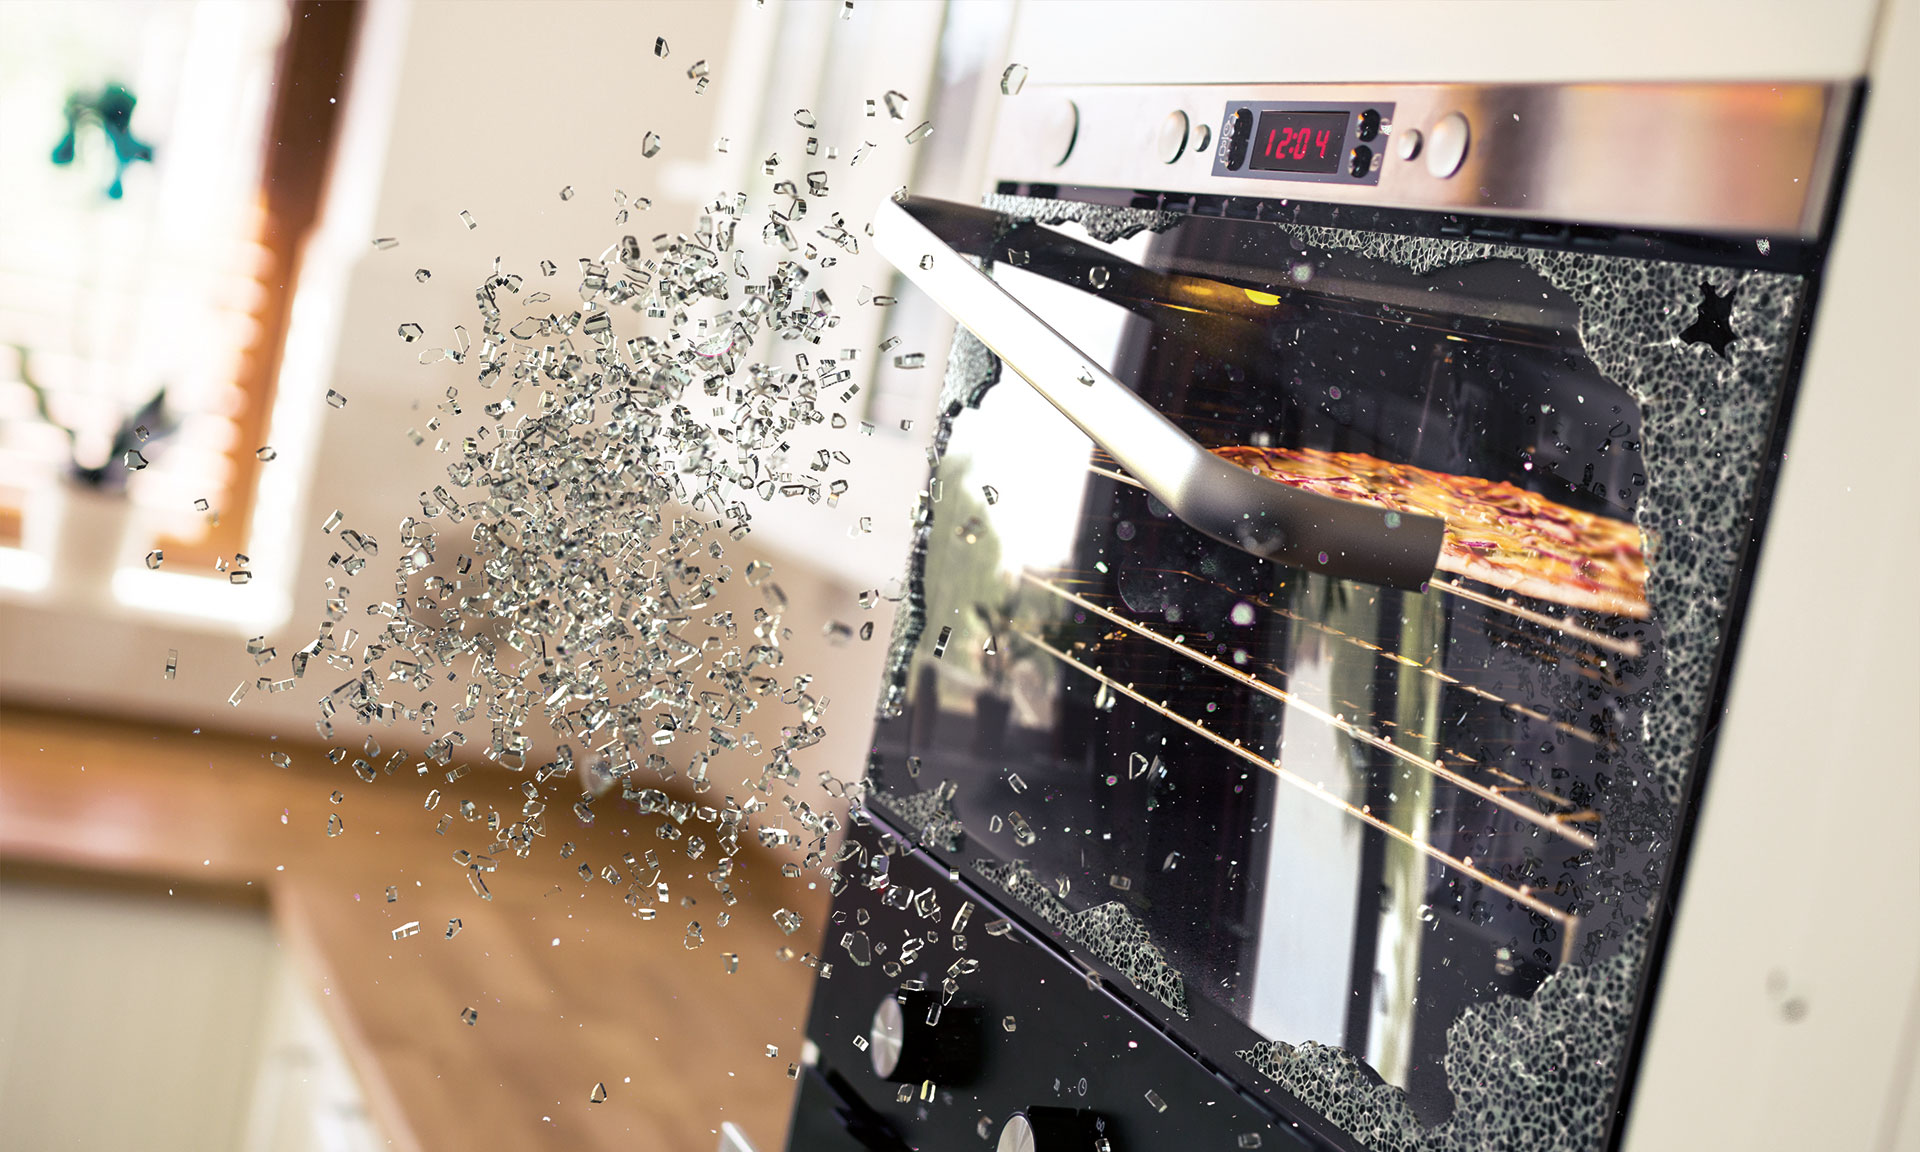 Exploding Ovens Why Glass Doors Shatter And What To Do It If Happens To You